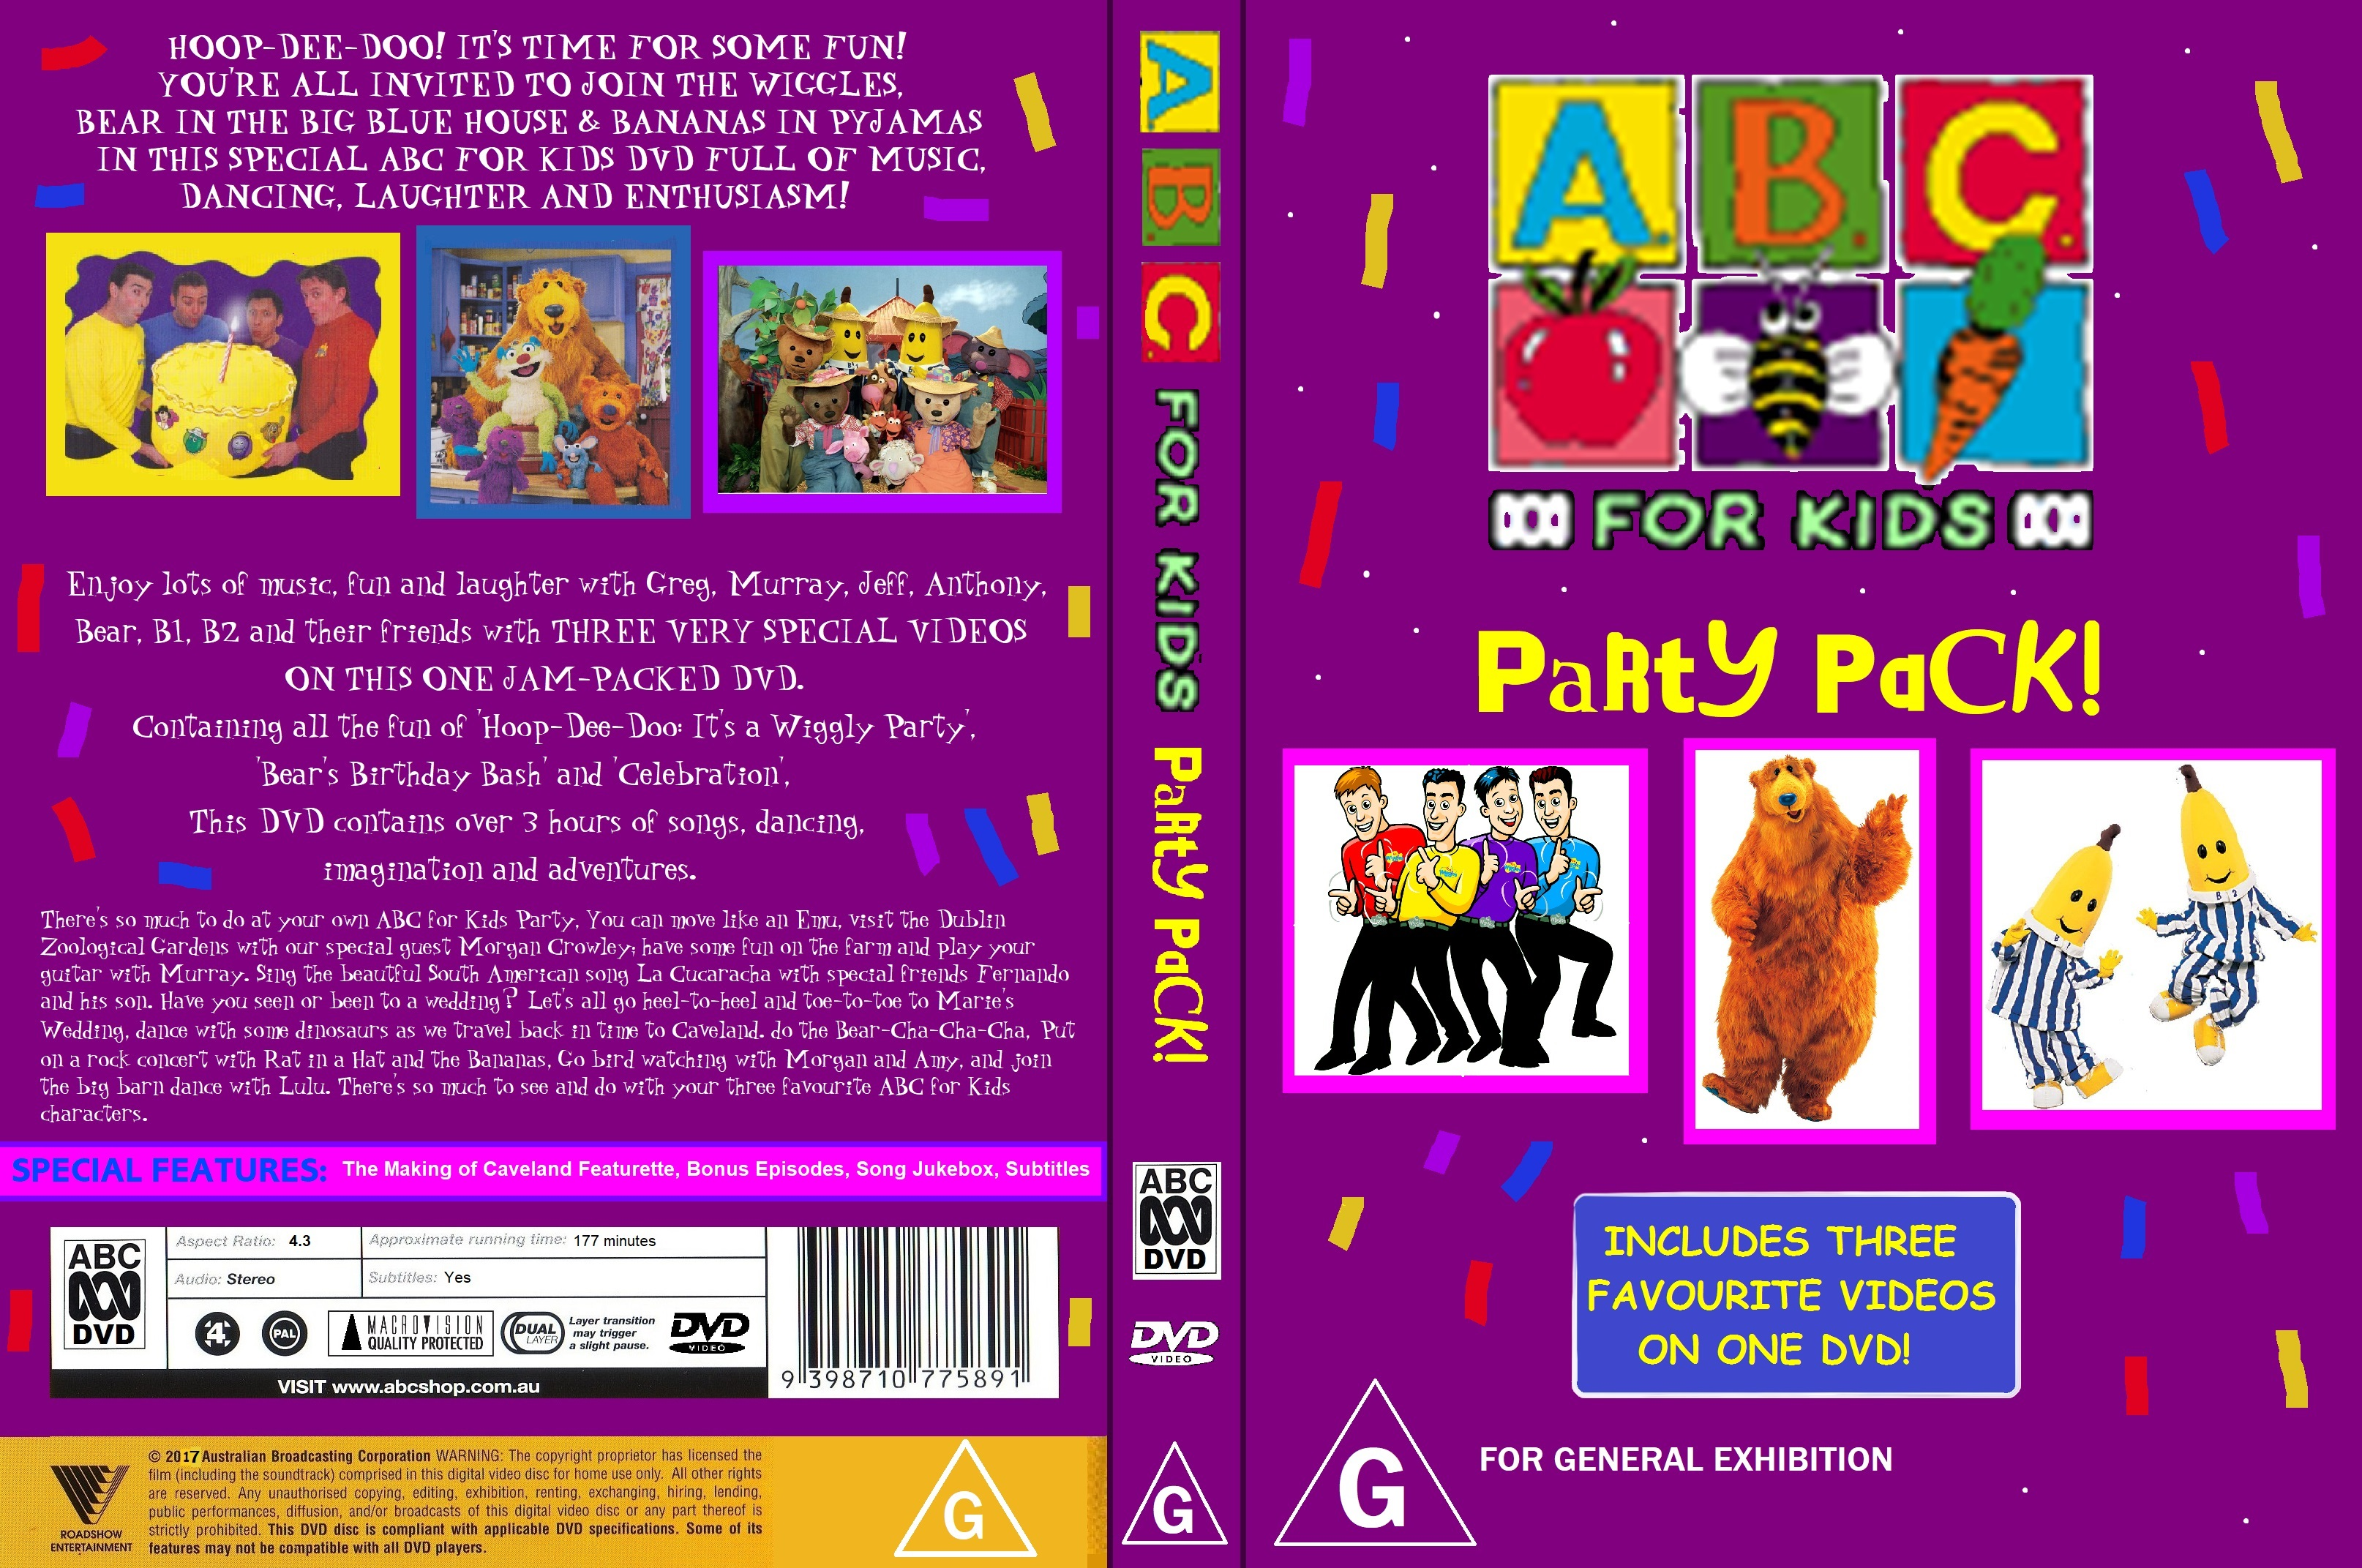 ABC For Kids Fanon ABC for Kids: Party Pack